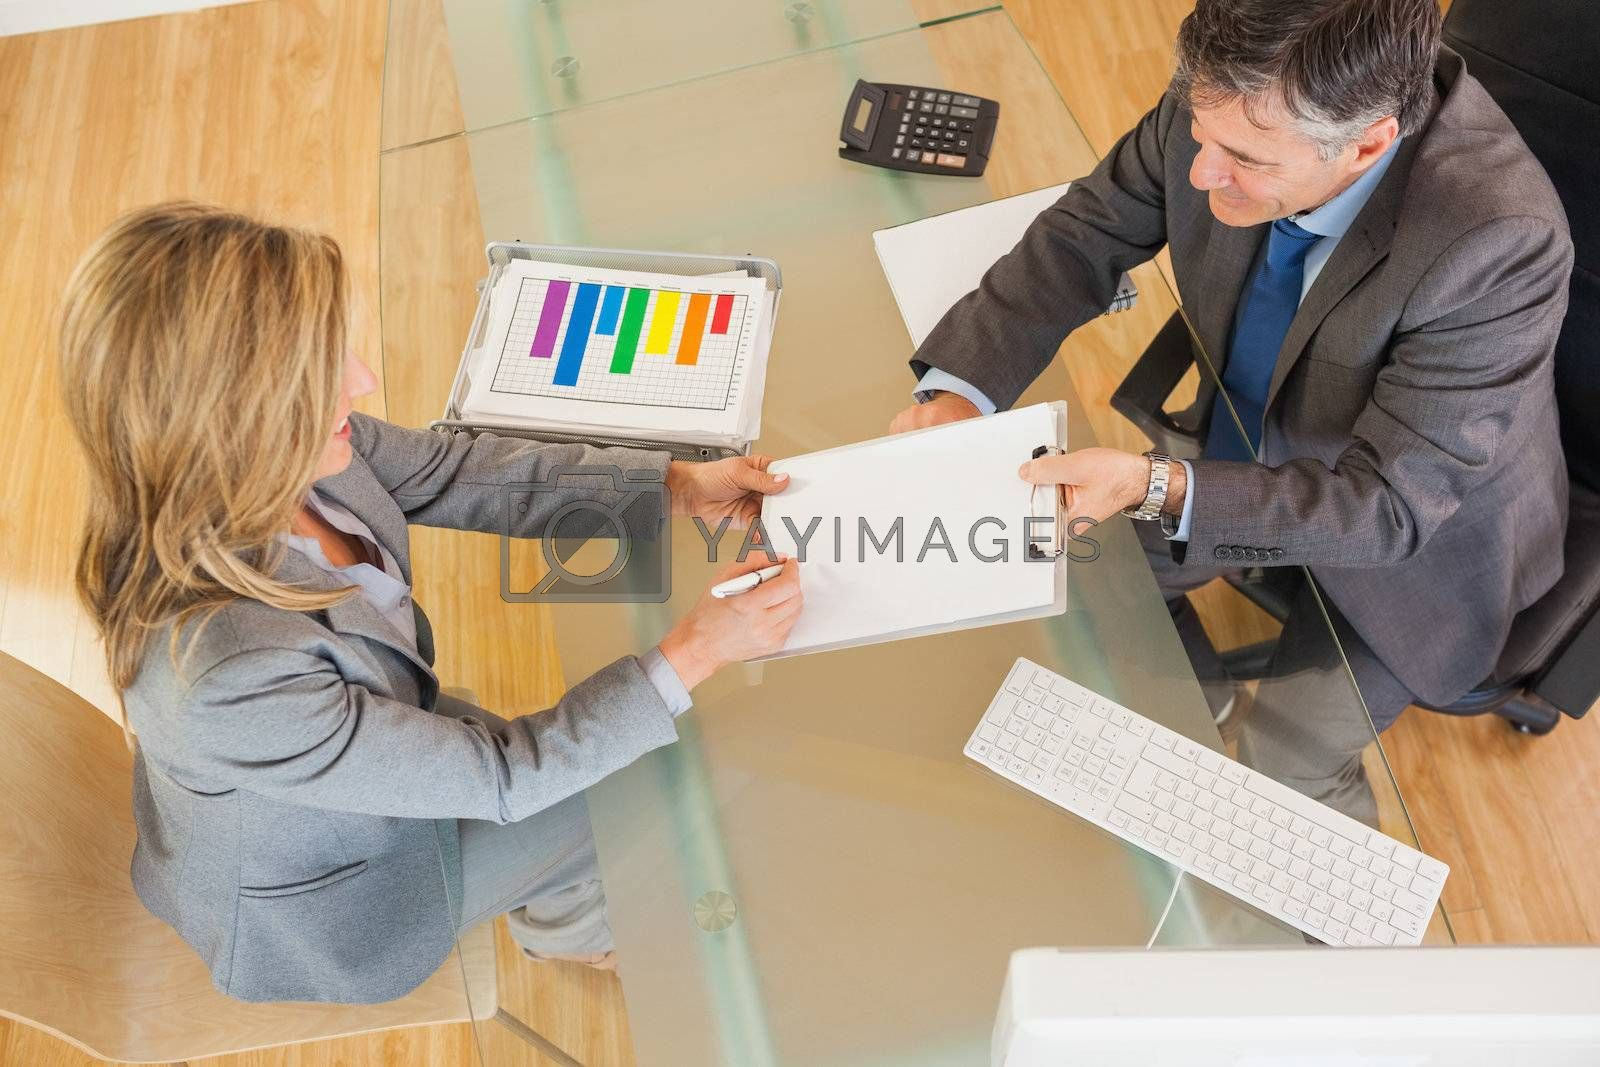 Two business people negociating in an office by Wavebreakmedia